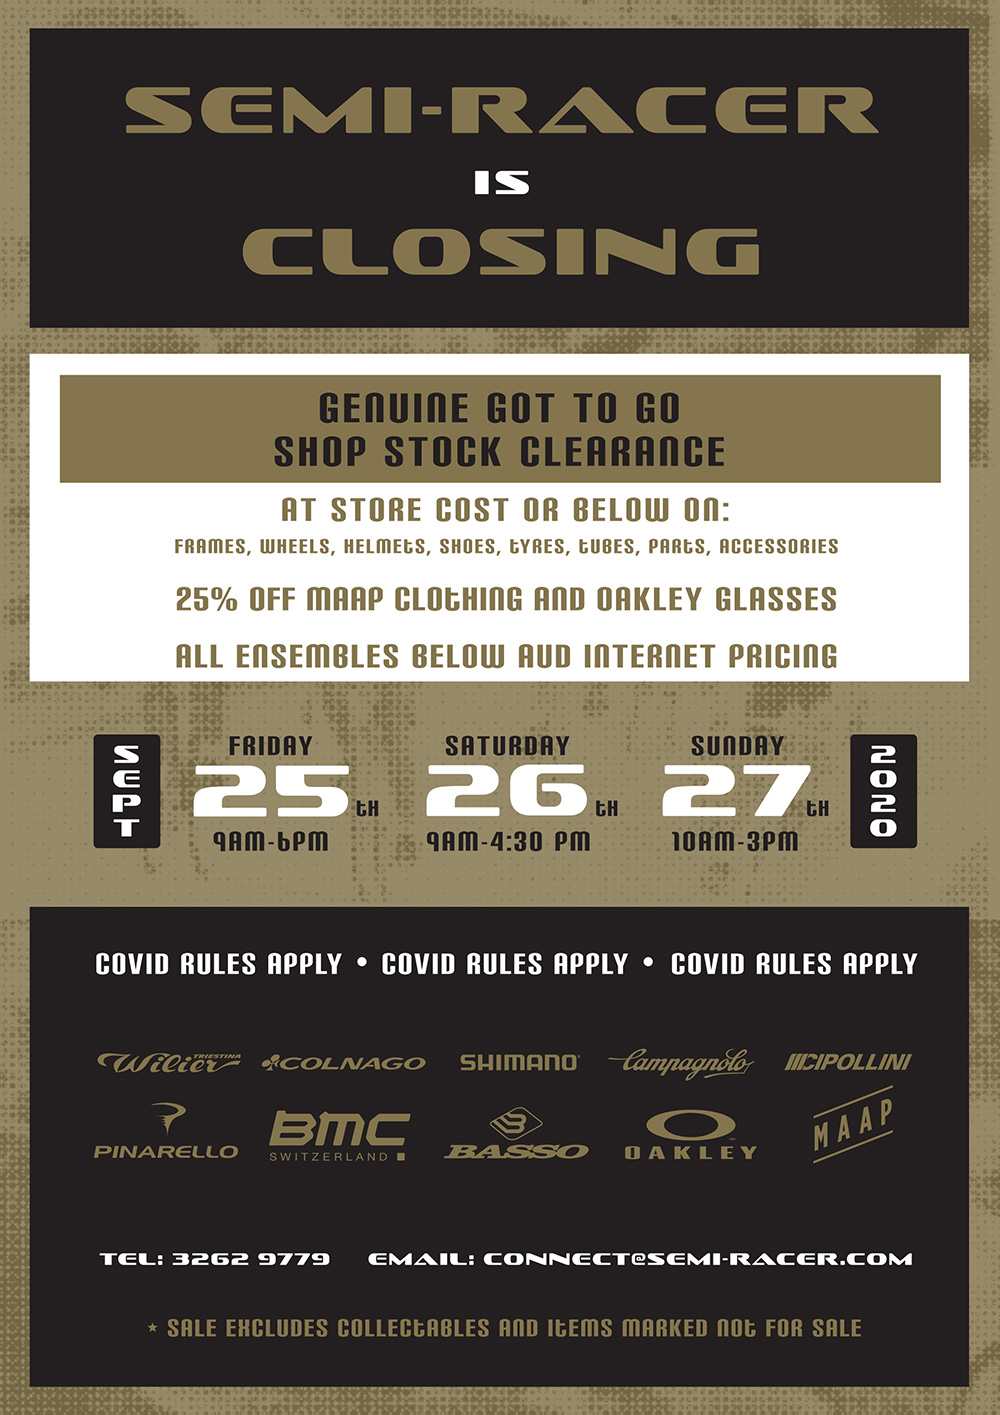 Semi-Racer is closing - Shop stock clearance 25th, 26th and 27th  September 2020 Frames, Wheels, Helmets, Shoes, Tyres, Tubes, Parts & Accessories at shop cost or below